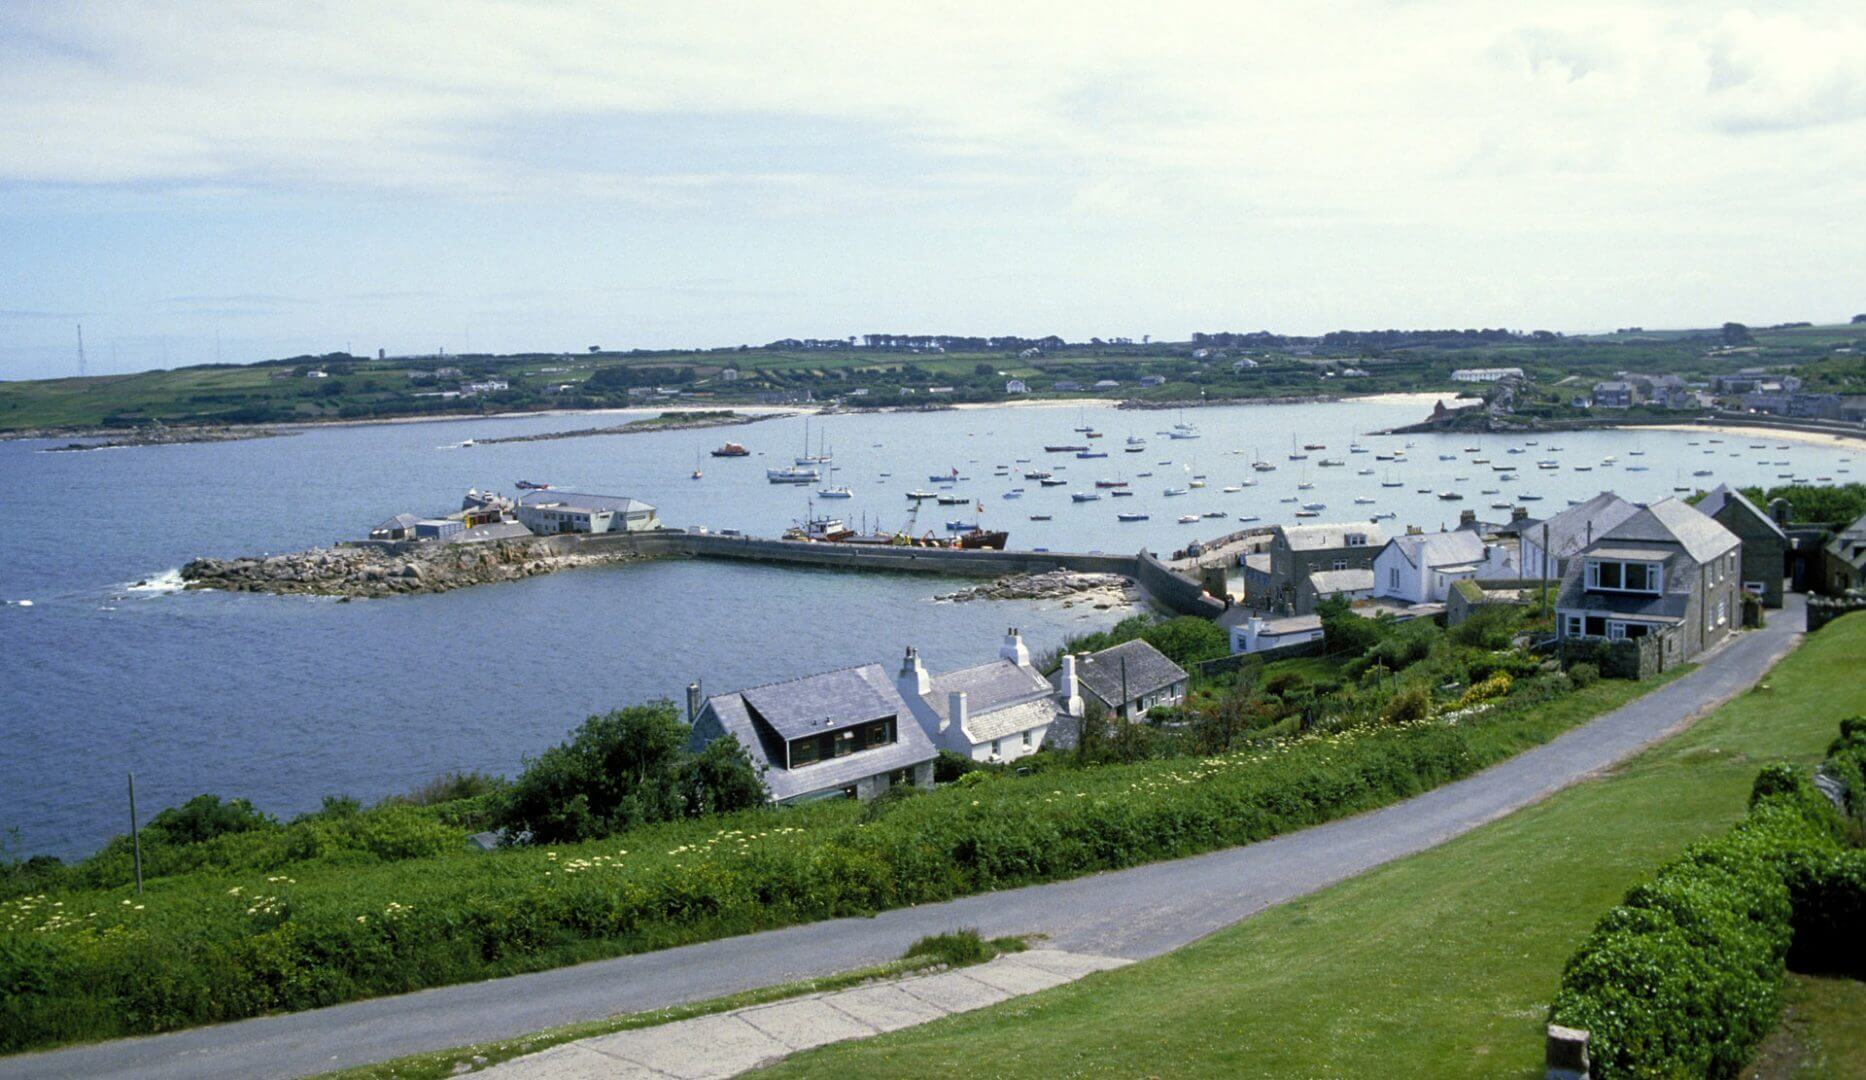 Longstone Lodge - St. Mary's - Scilly Isles